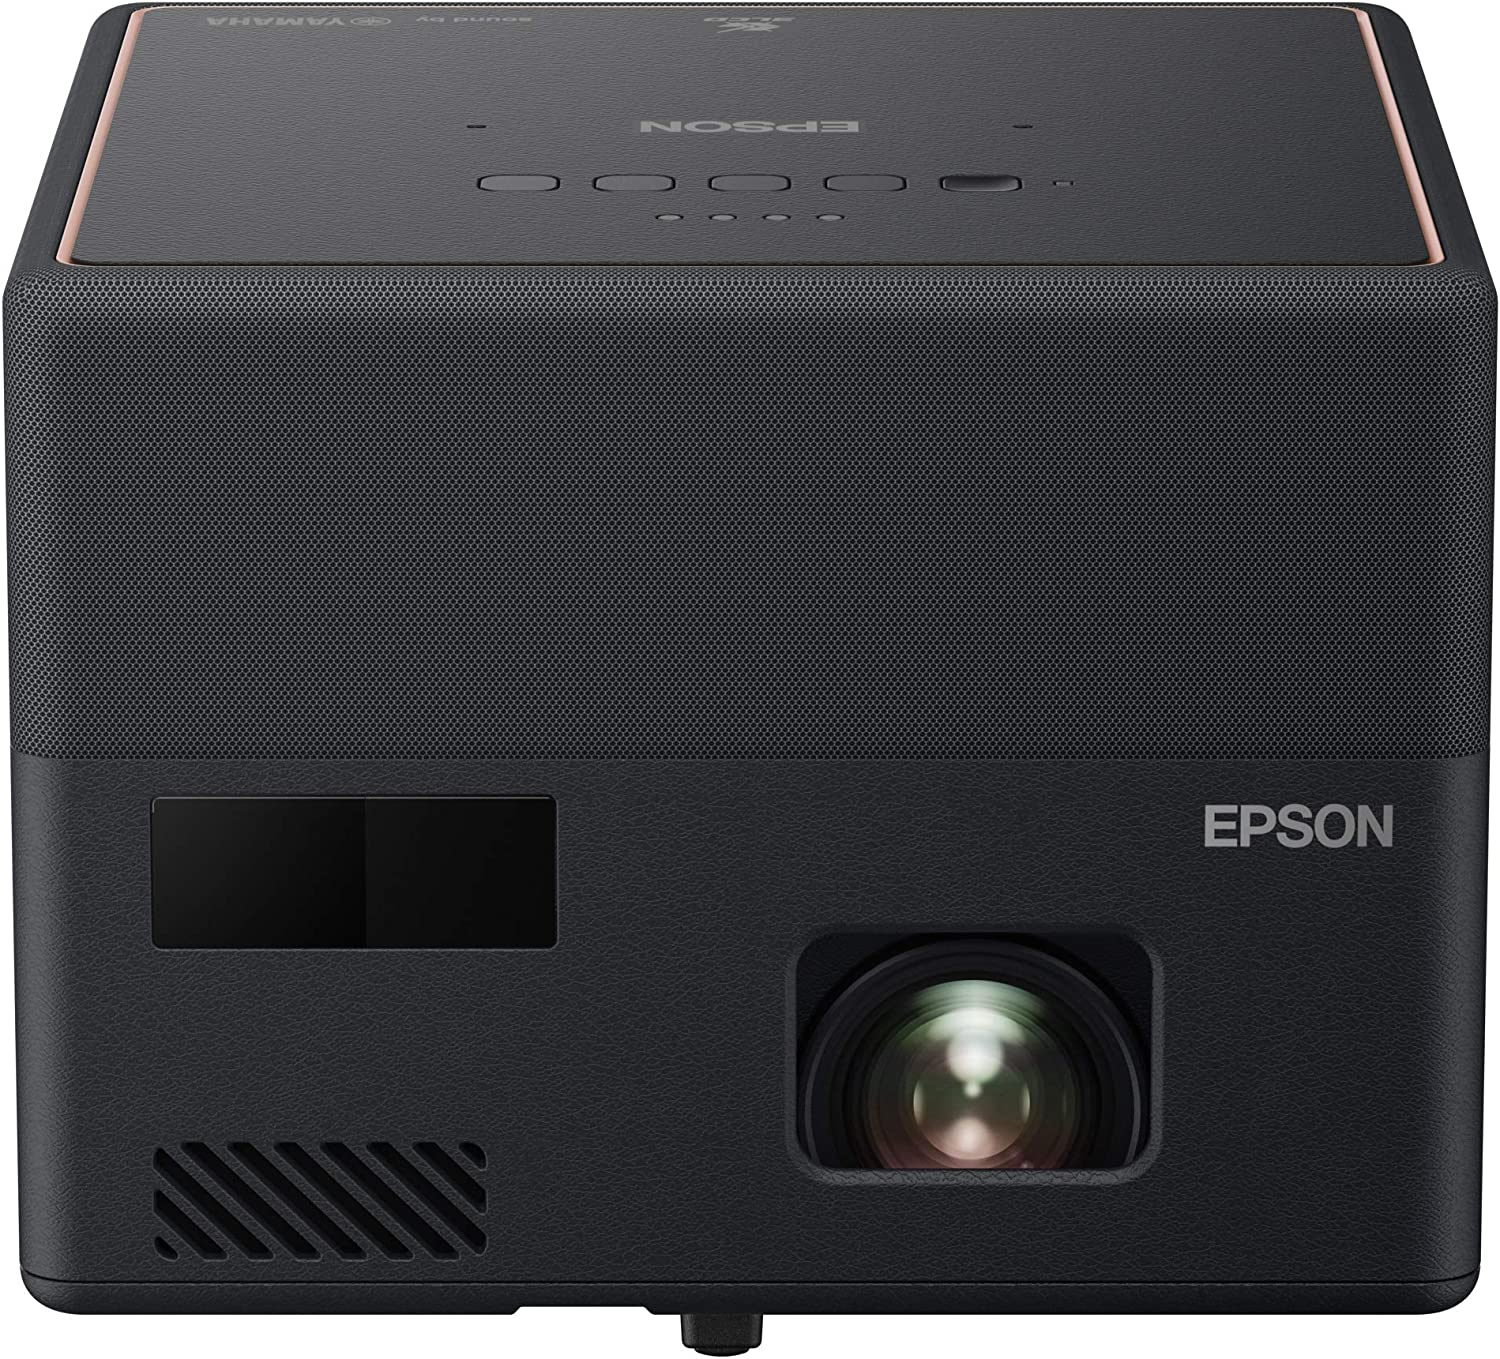 Epson EF-12 - Proyector 3LCD (Full HD, 2500.000:1, contraste)